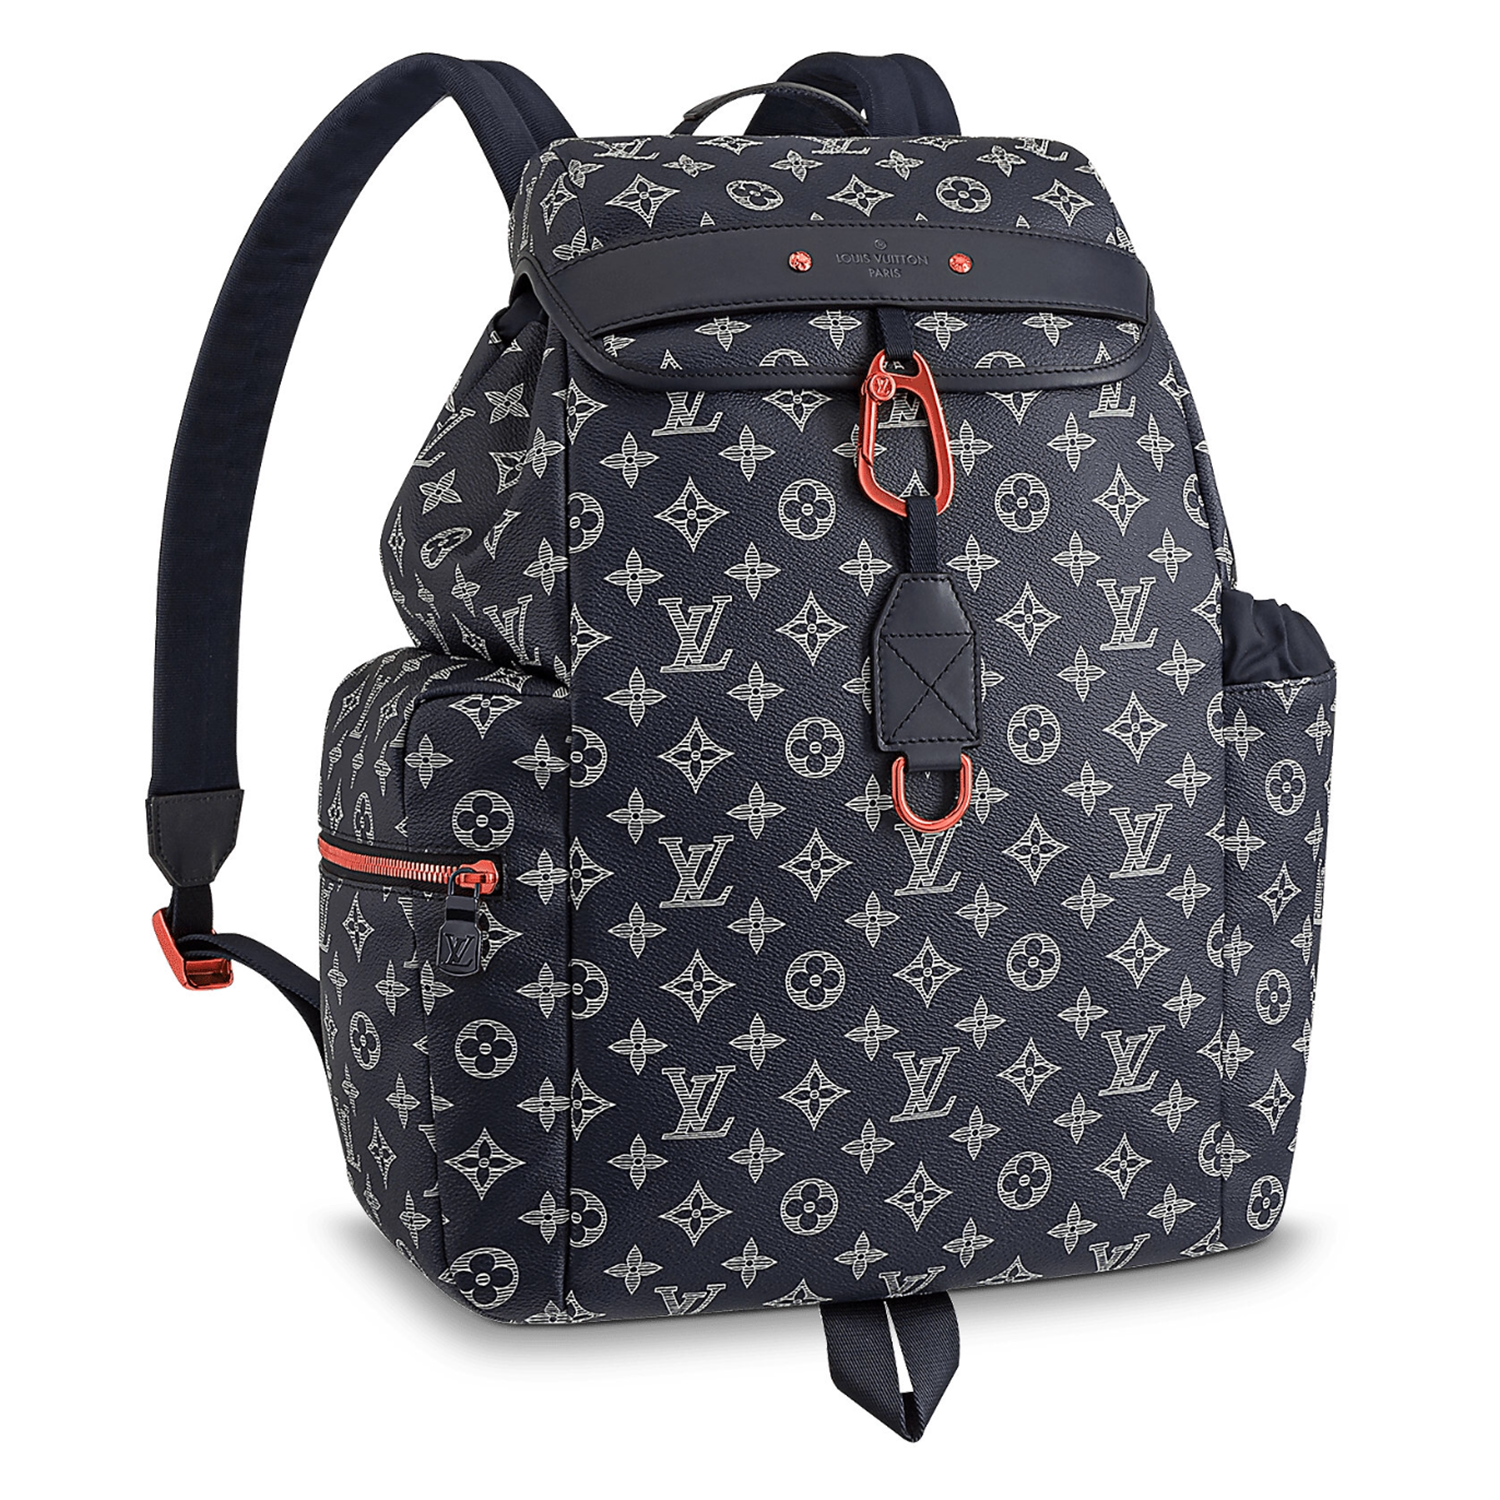 discovery backpack - €2370 $3450M43693MONOGRAM INK